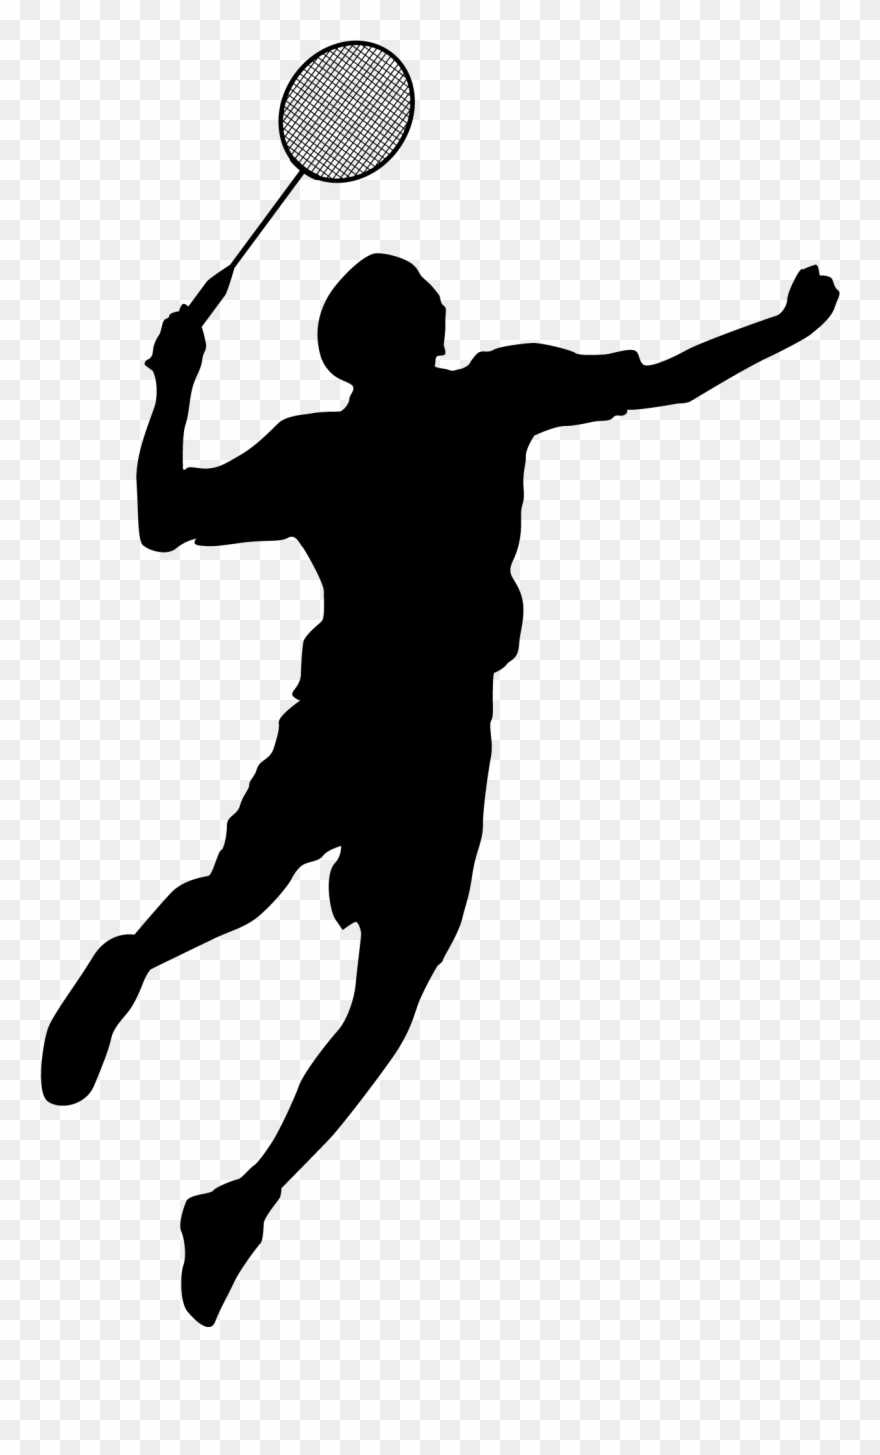 Silhouette Sports Figures At Getdrawings.